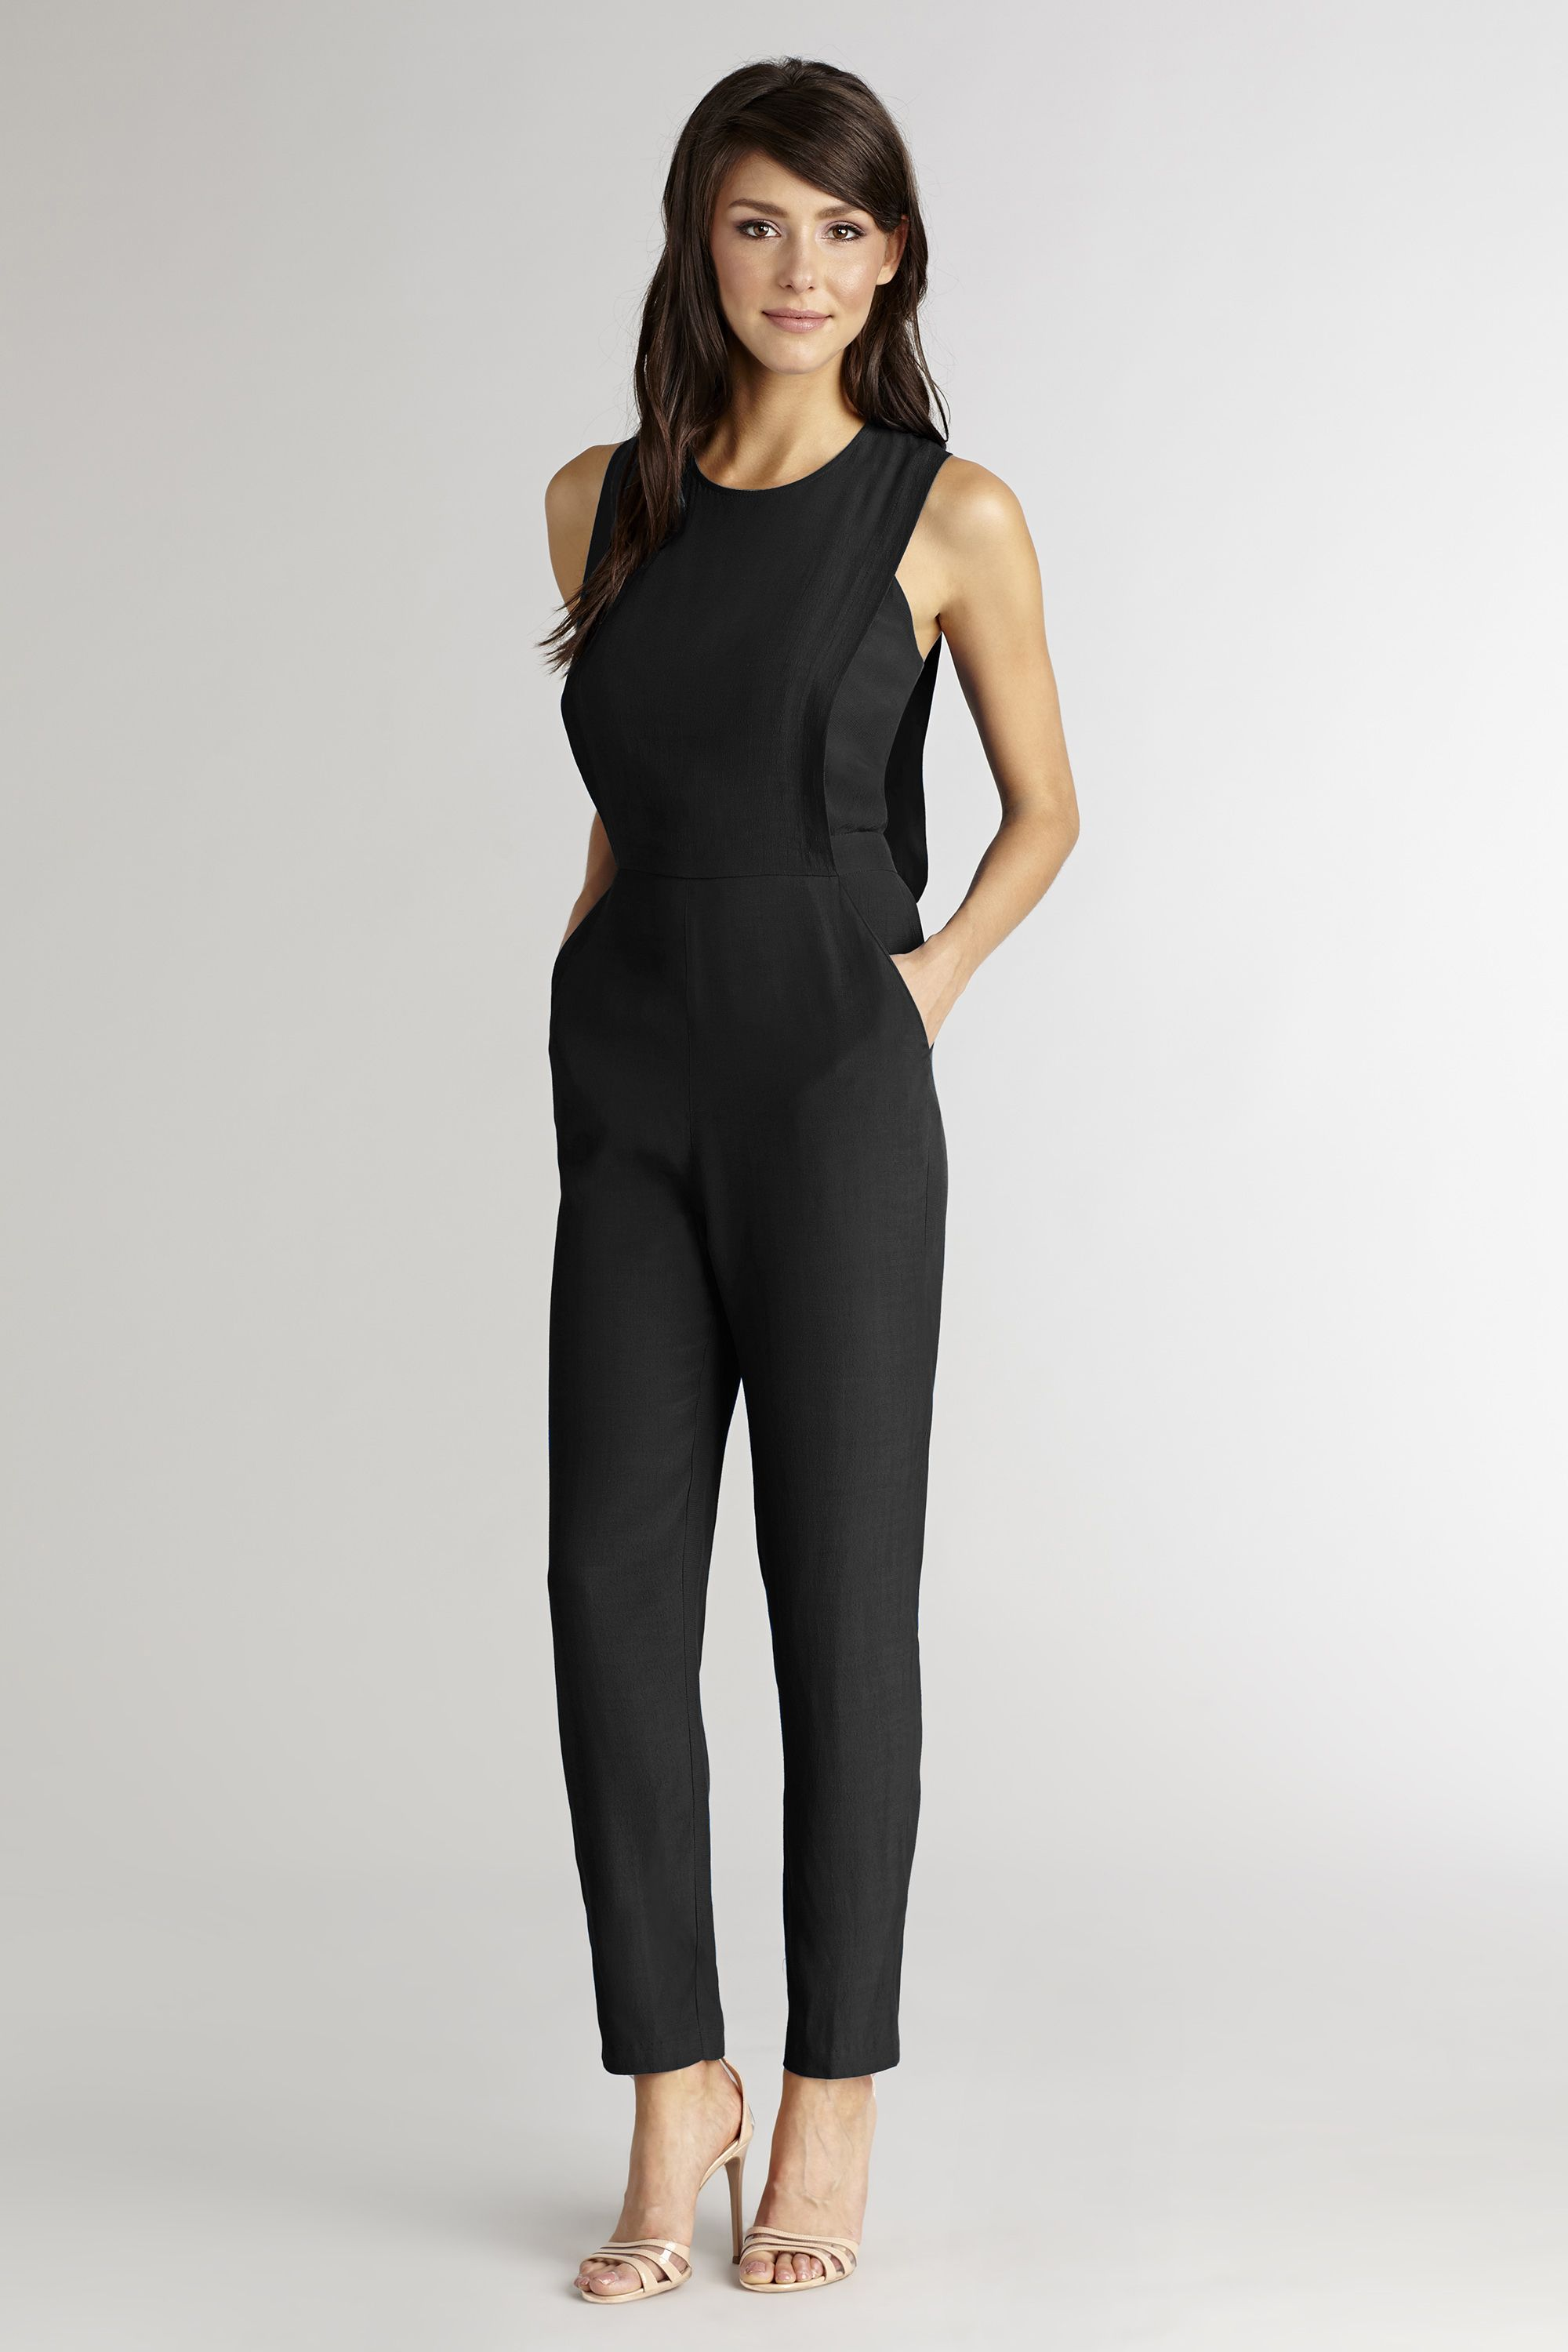 cc34d6e17db1 The perfect black jumpsuit to wear from work to play